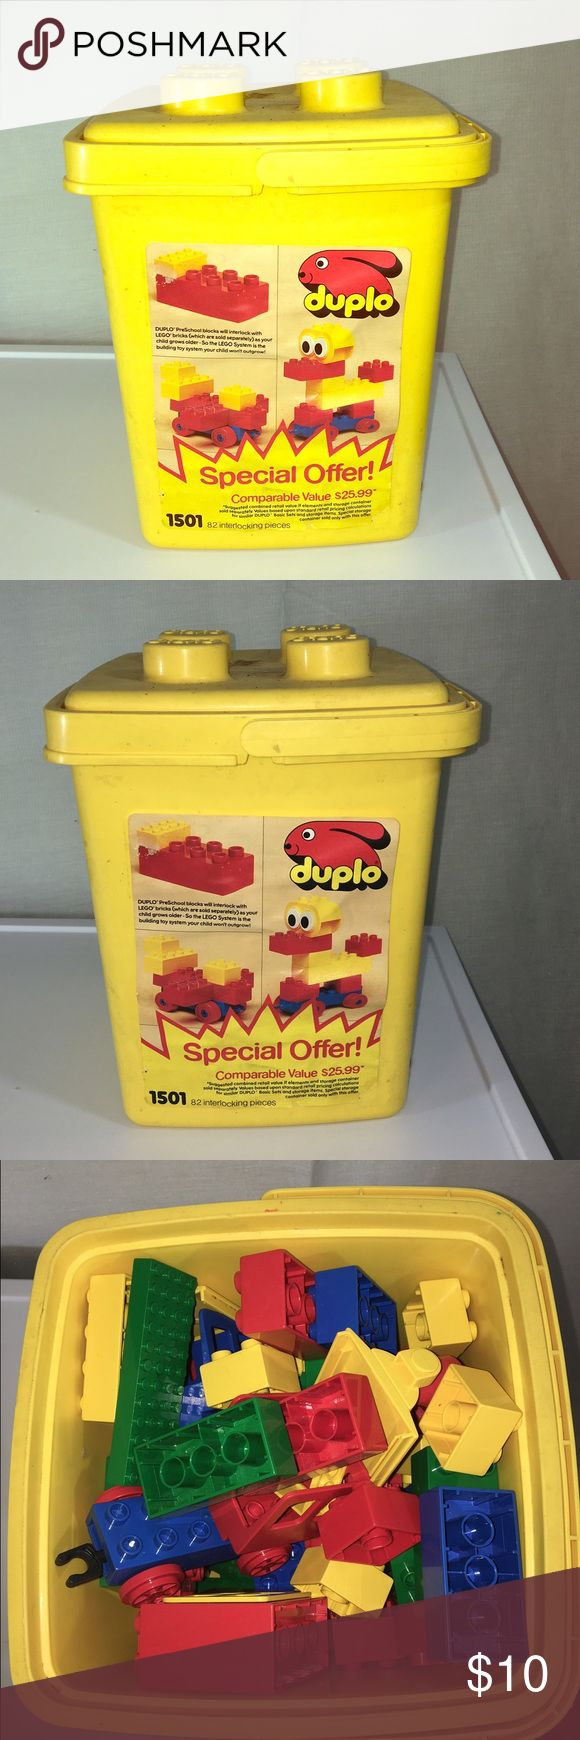 Large Lego Bucket An older Lego bucket that is in great condition and contains its original pieces, including train pieces. A great toy at a great price! Lego Other